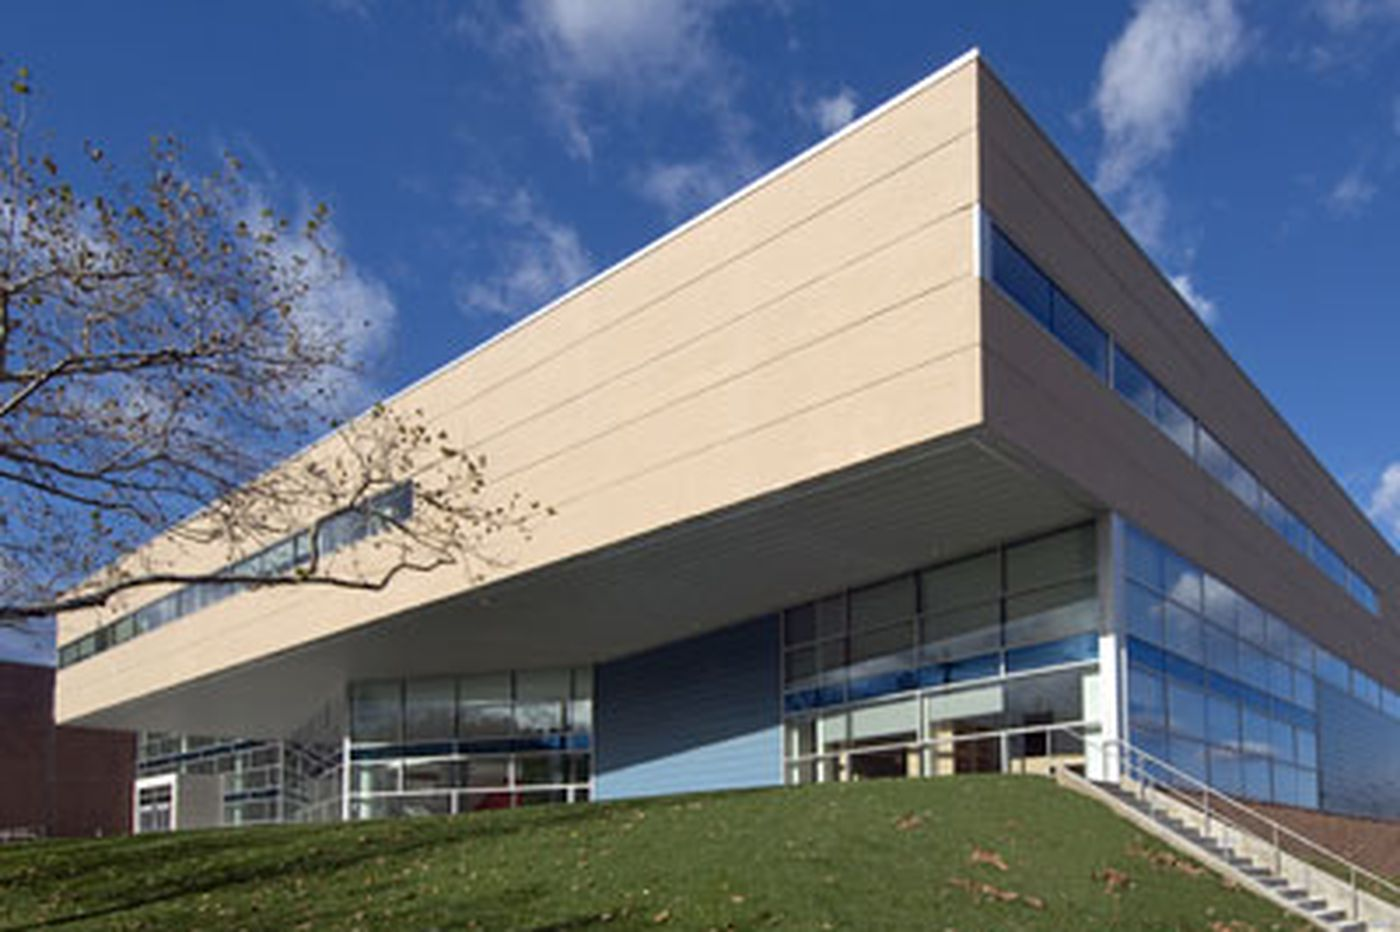 Changing Skyline: Temple's artless new building